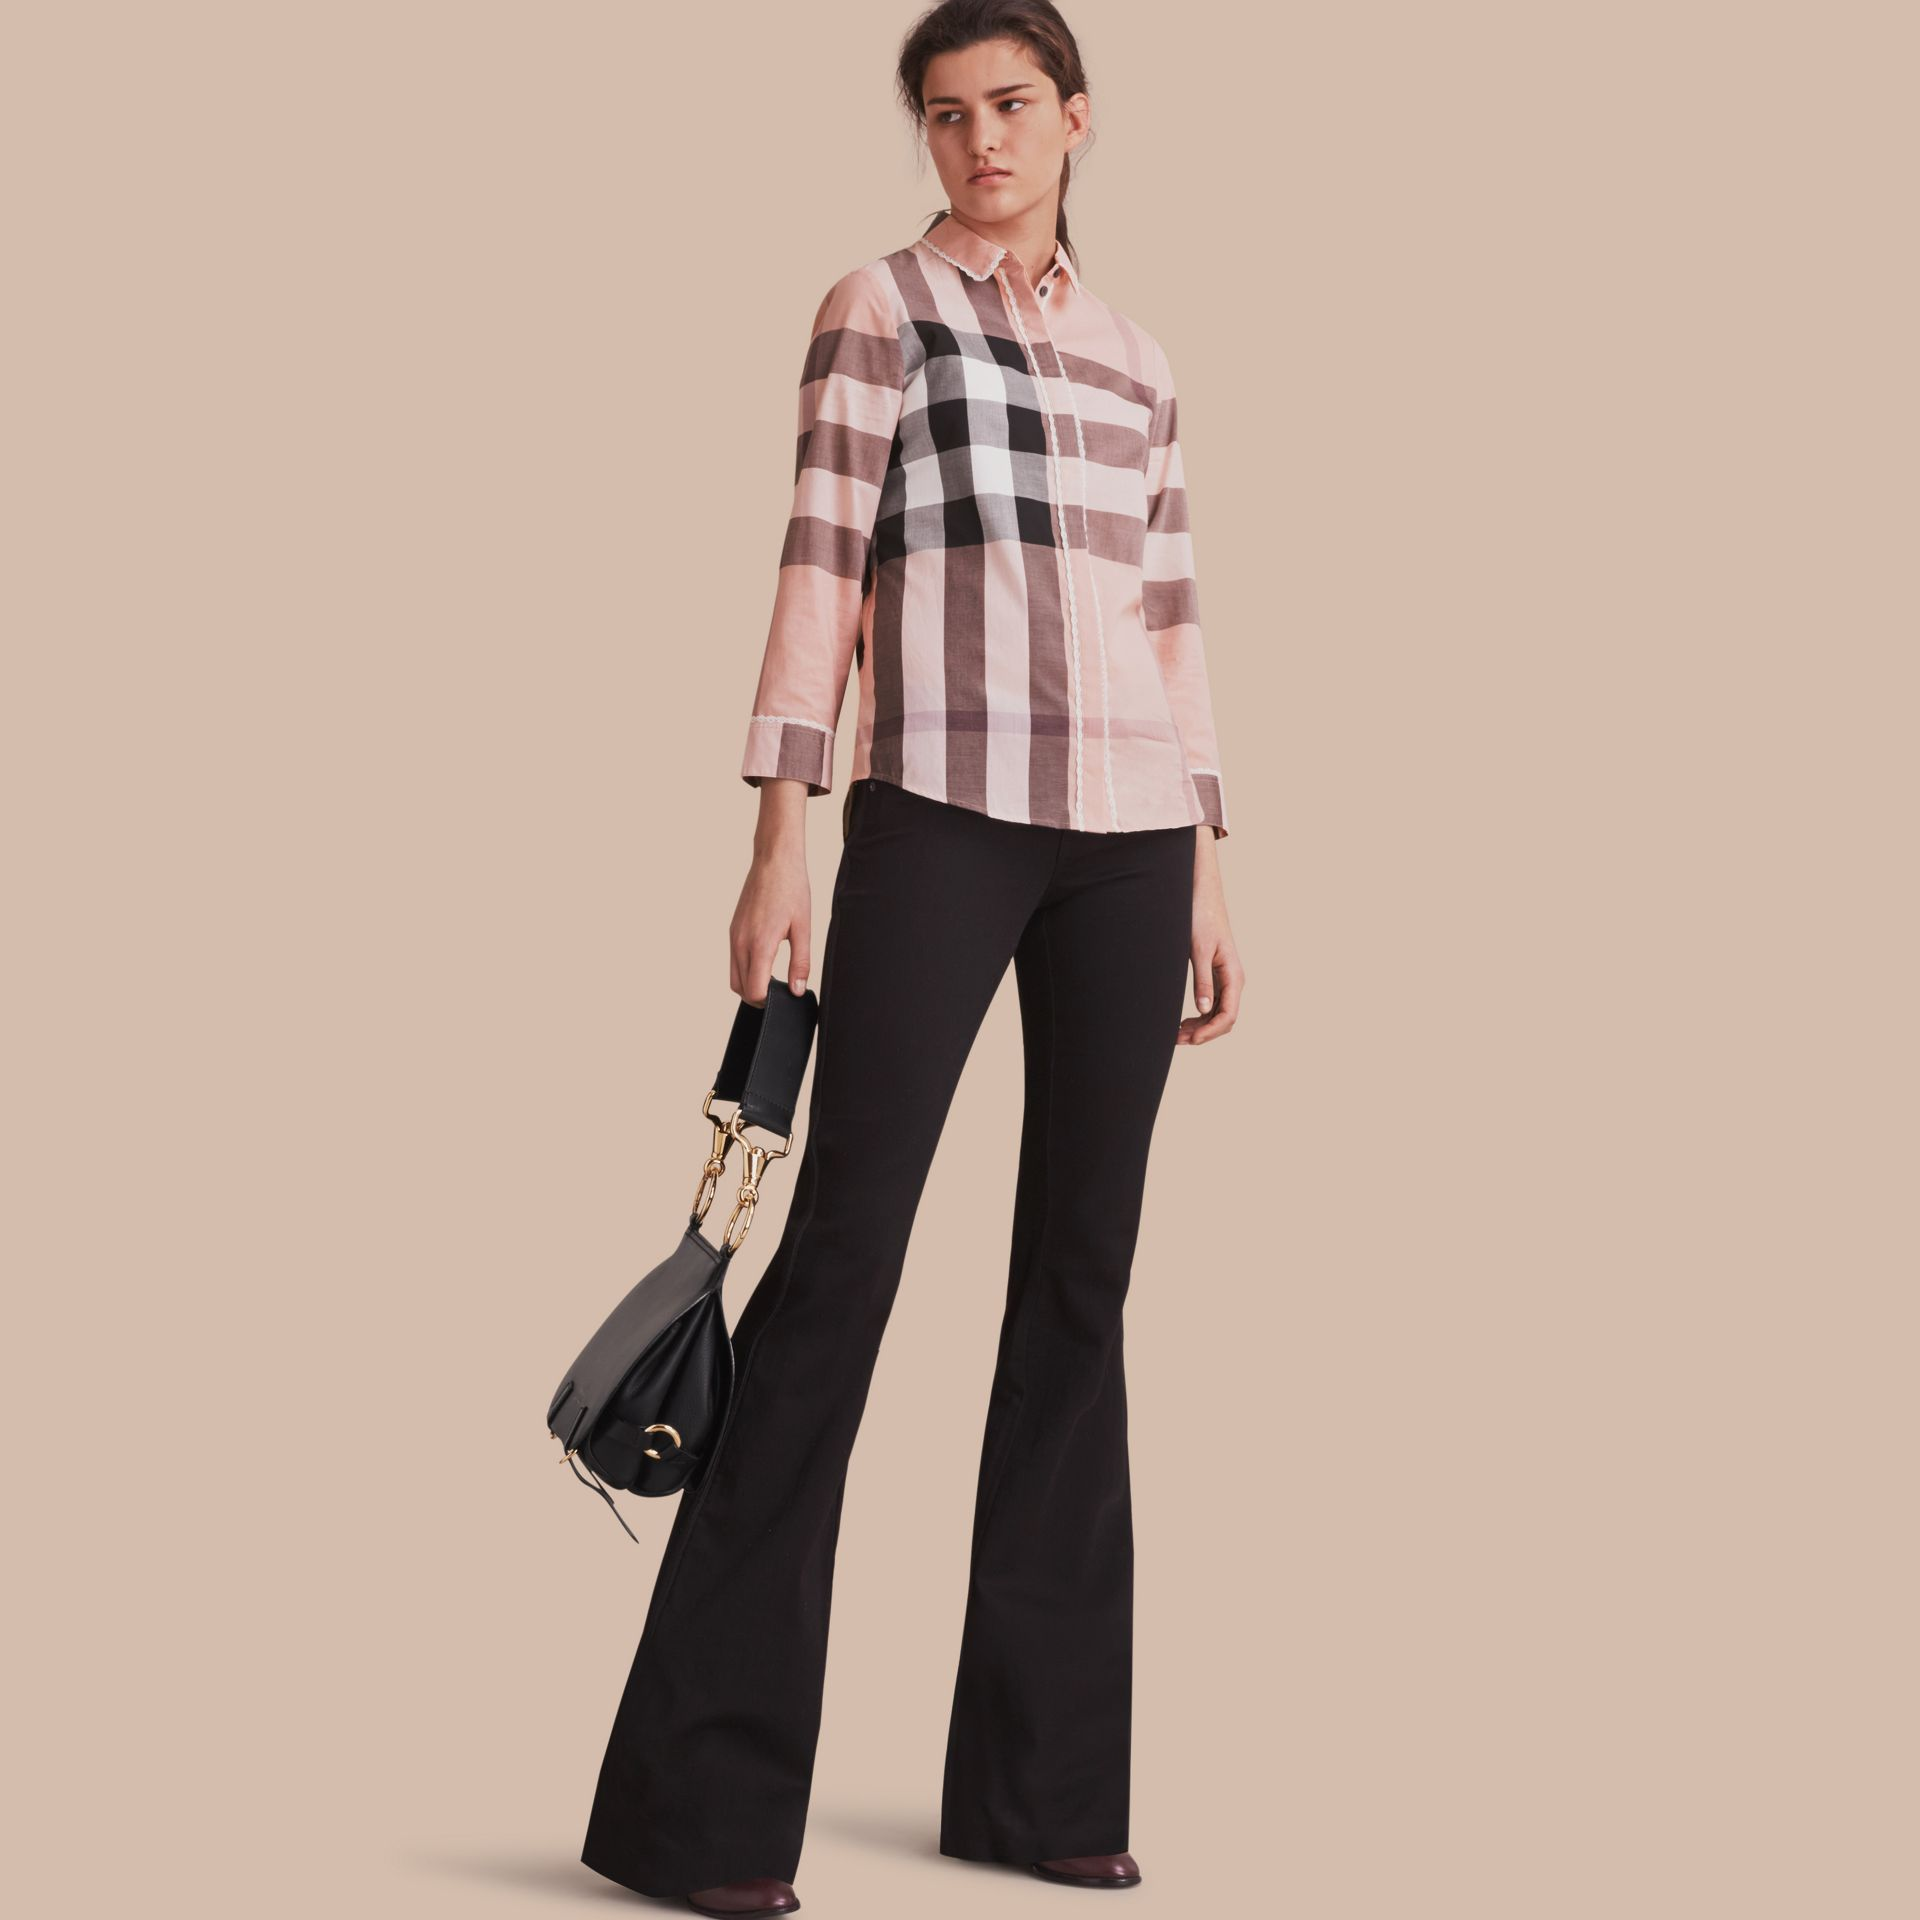 Lace Trim Check Cotton Shirt in Antique Pink - Women | Burberry - gallery image 1